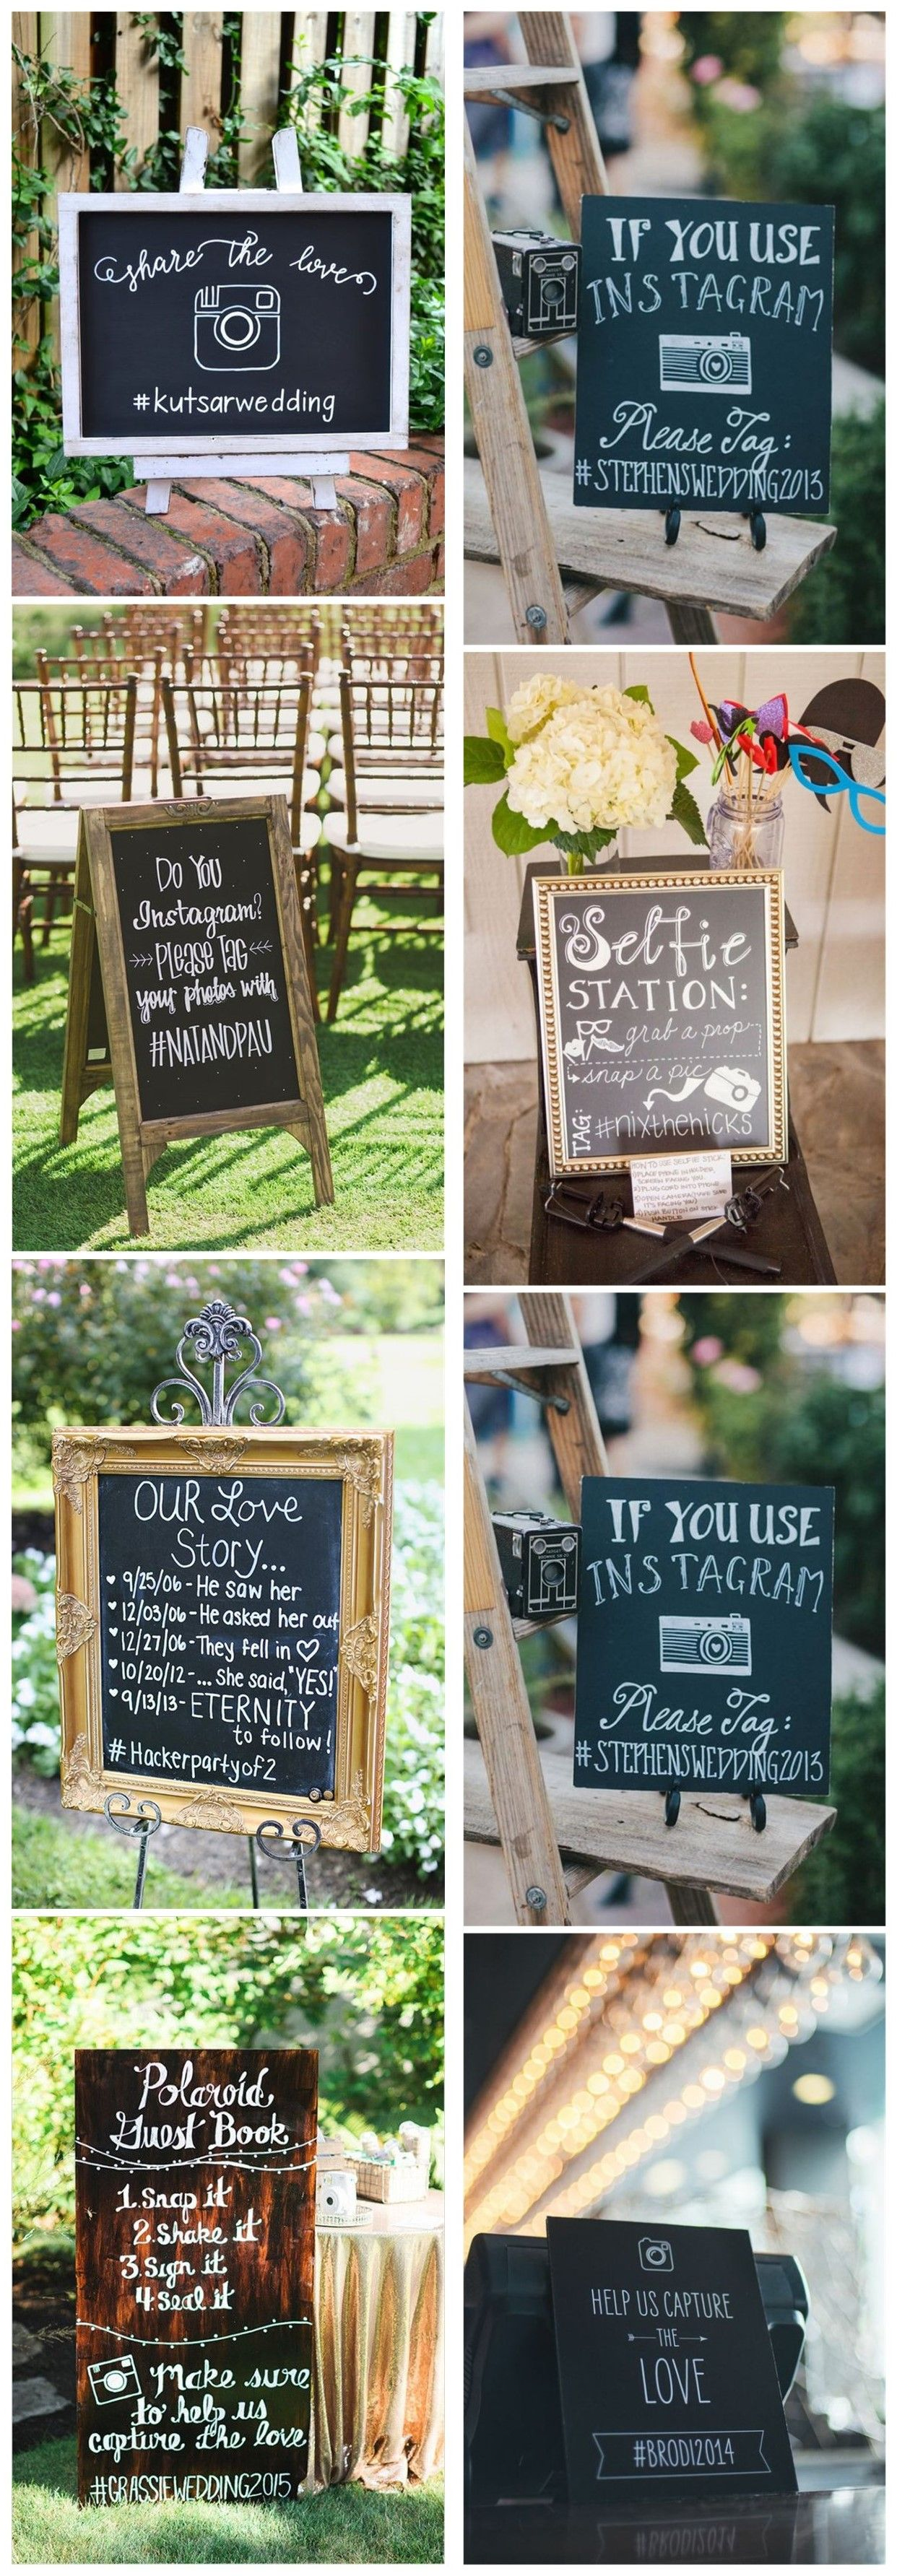 Wedding decorations with flowers november 2018  Rustic Wedding Hashtag Ideas to Share Photos on Your Wedding